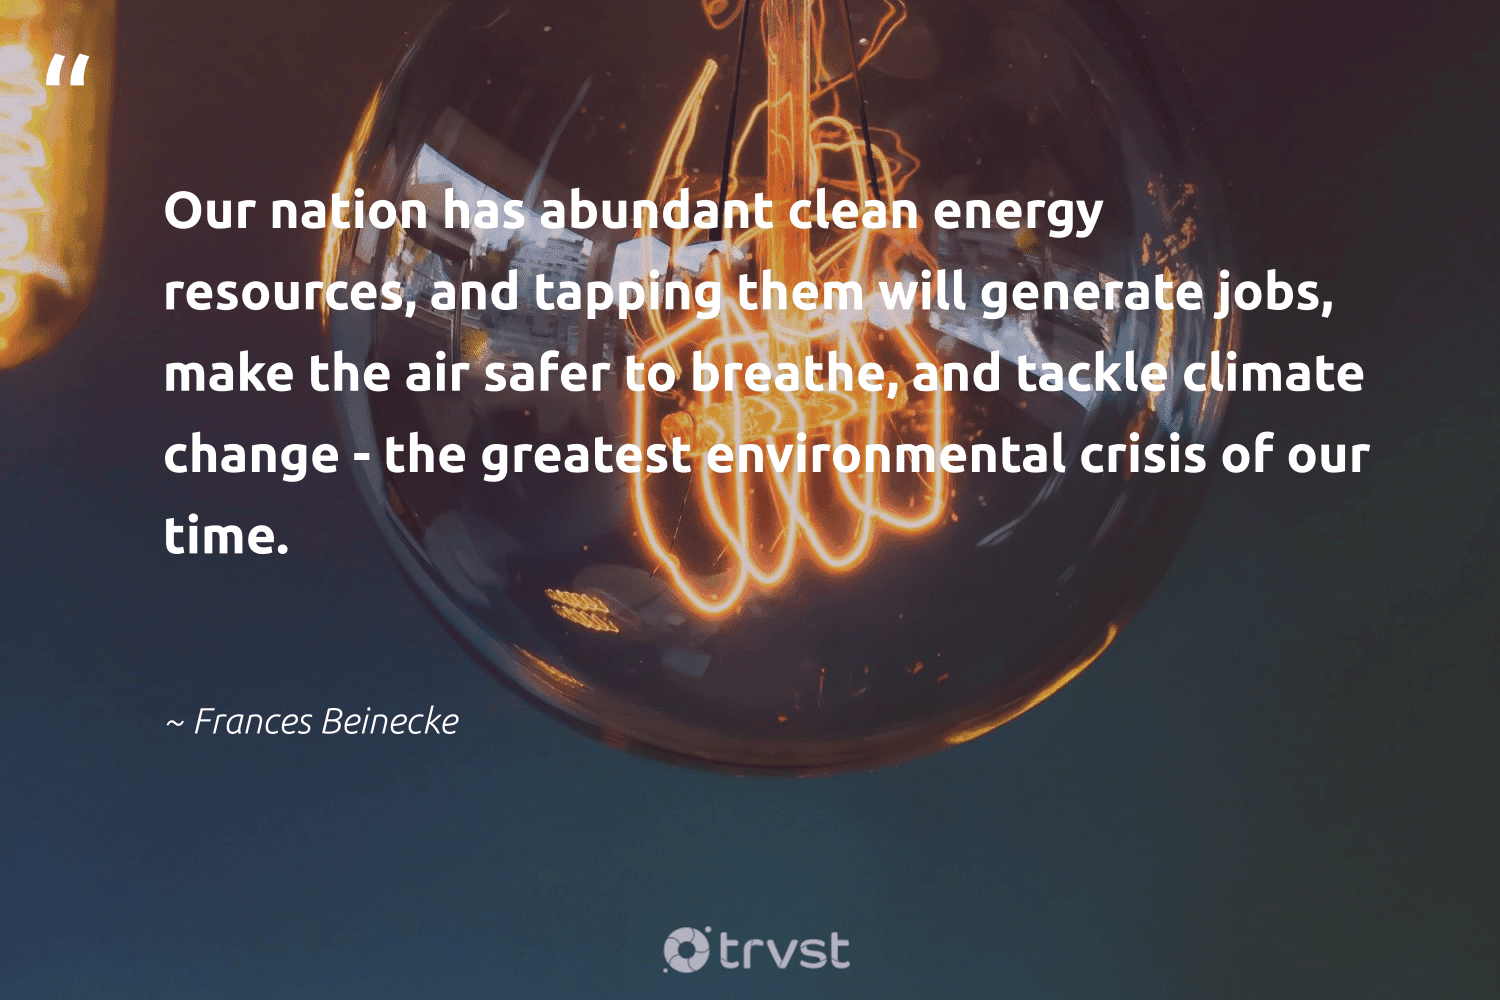 """""""Our nation has abundant clean energy resources, and tapping them will generate jobs, make the air safer to breathe, and tackle climate change - the greatest environmental crisis of our time.""""  - Frances Beinecke #trvst #quotes #climatechange #environmental #energy #cleanenergy #climate #climatechangeisreal #affordable #sustainableliving #climatefight #beinspired"""